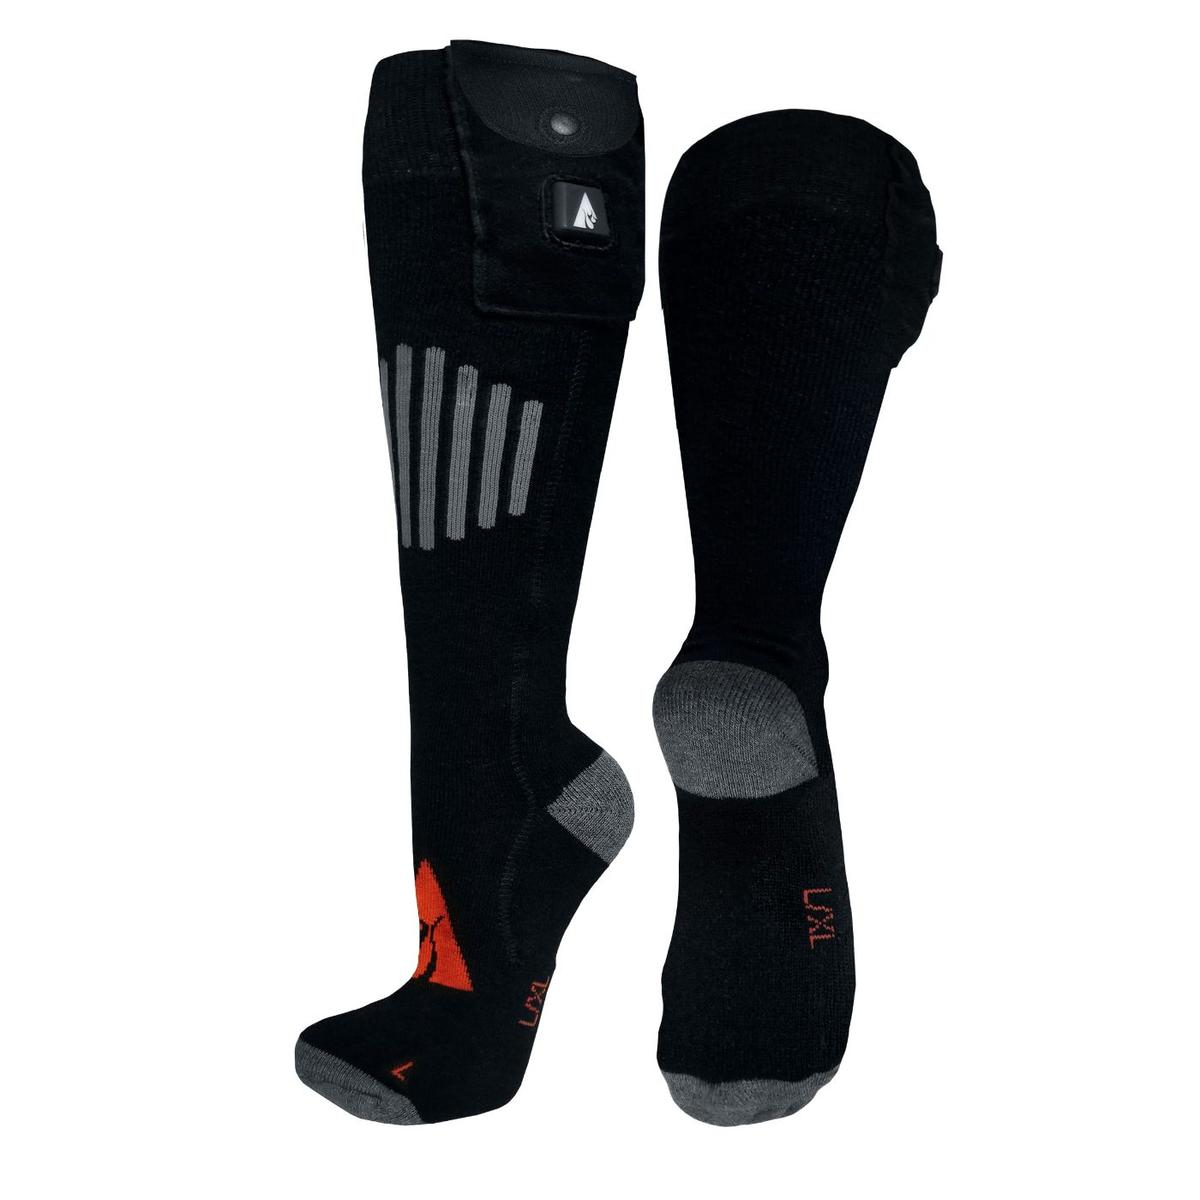 ActionHeat Wool 5V Battery Heated Socks - Replacement Socks Only - Front